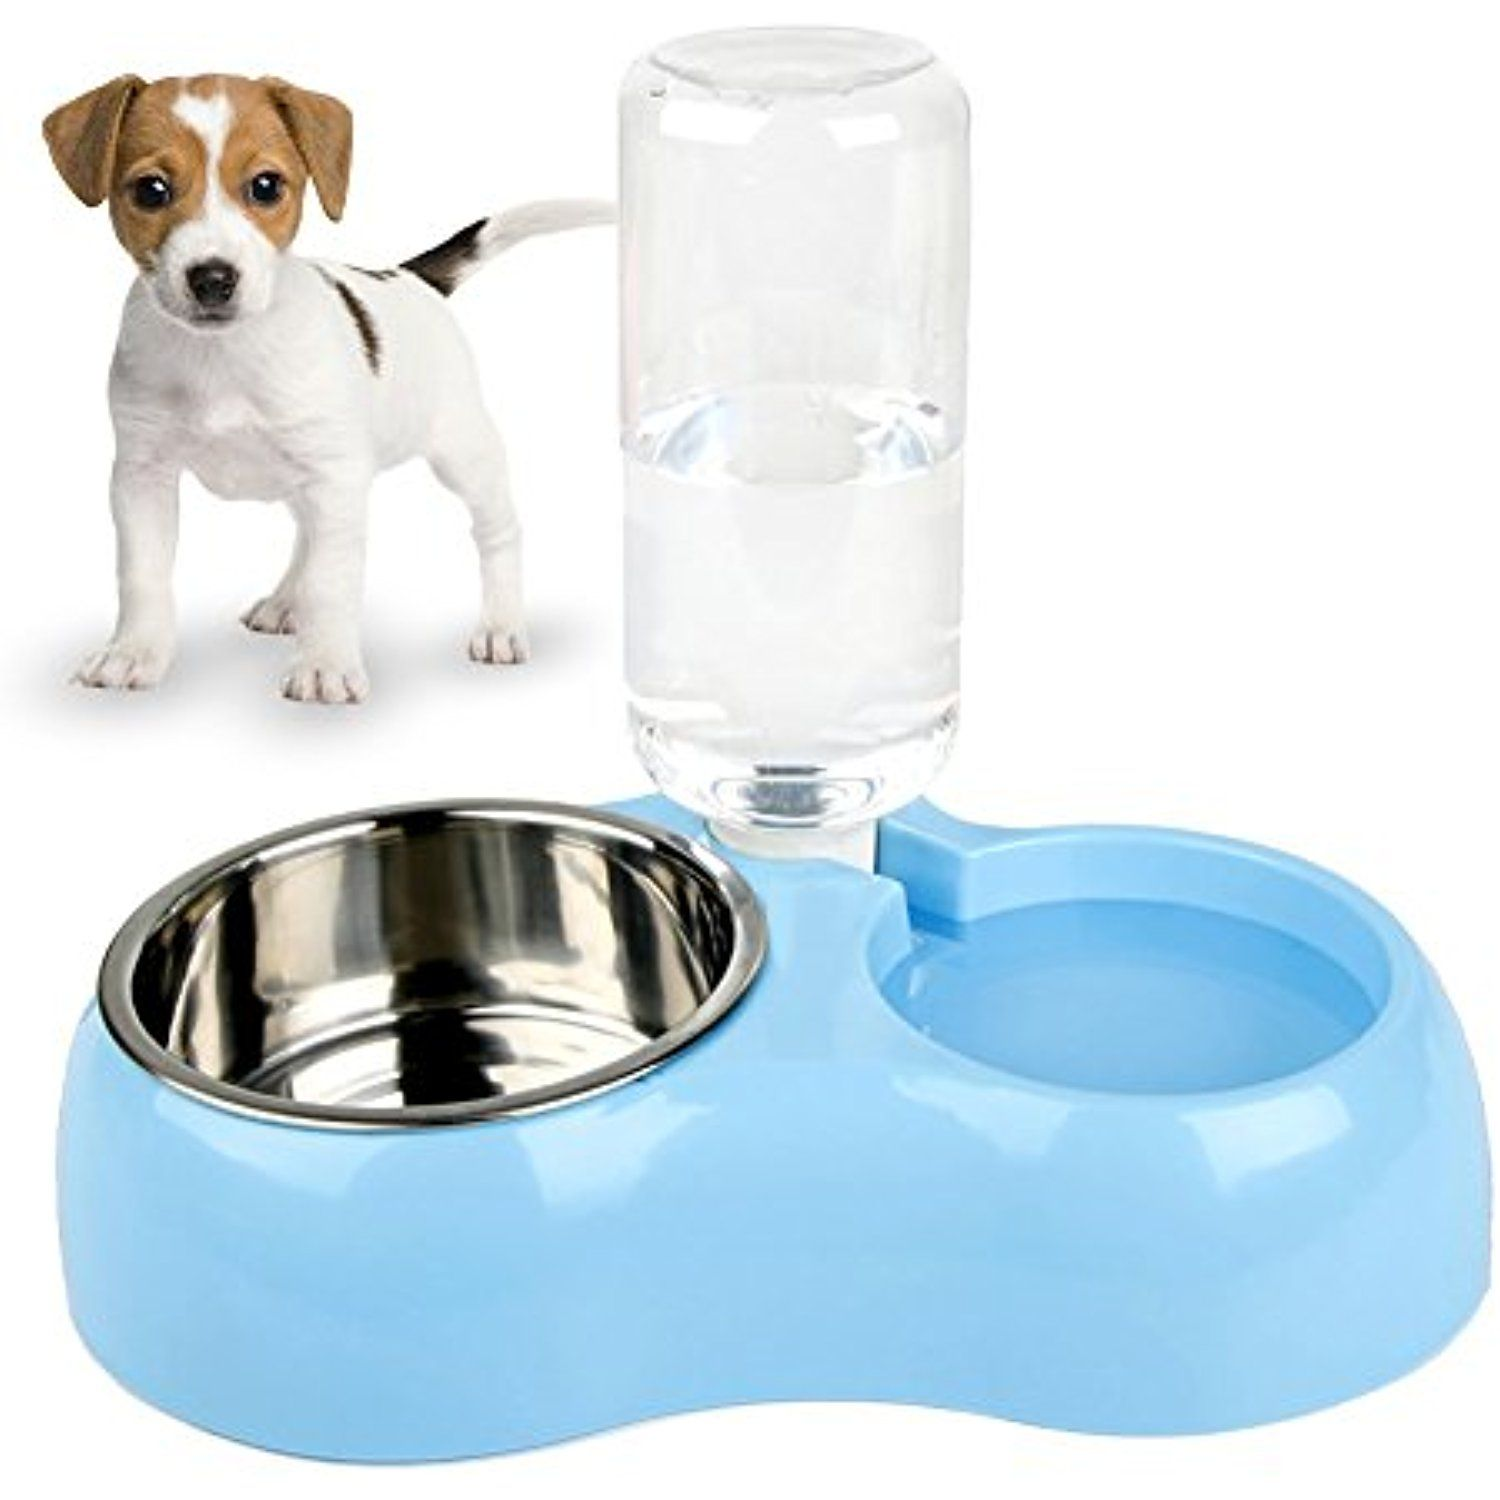 Removable Dog Water Bowls Euow Stainless Steel Double Food Bottles With Automatic Water Dispenser No Spill And Non Skid Dog Water Bowls Cat Food Dish Dog Cat